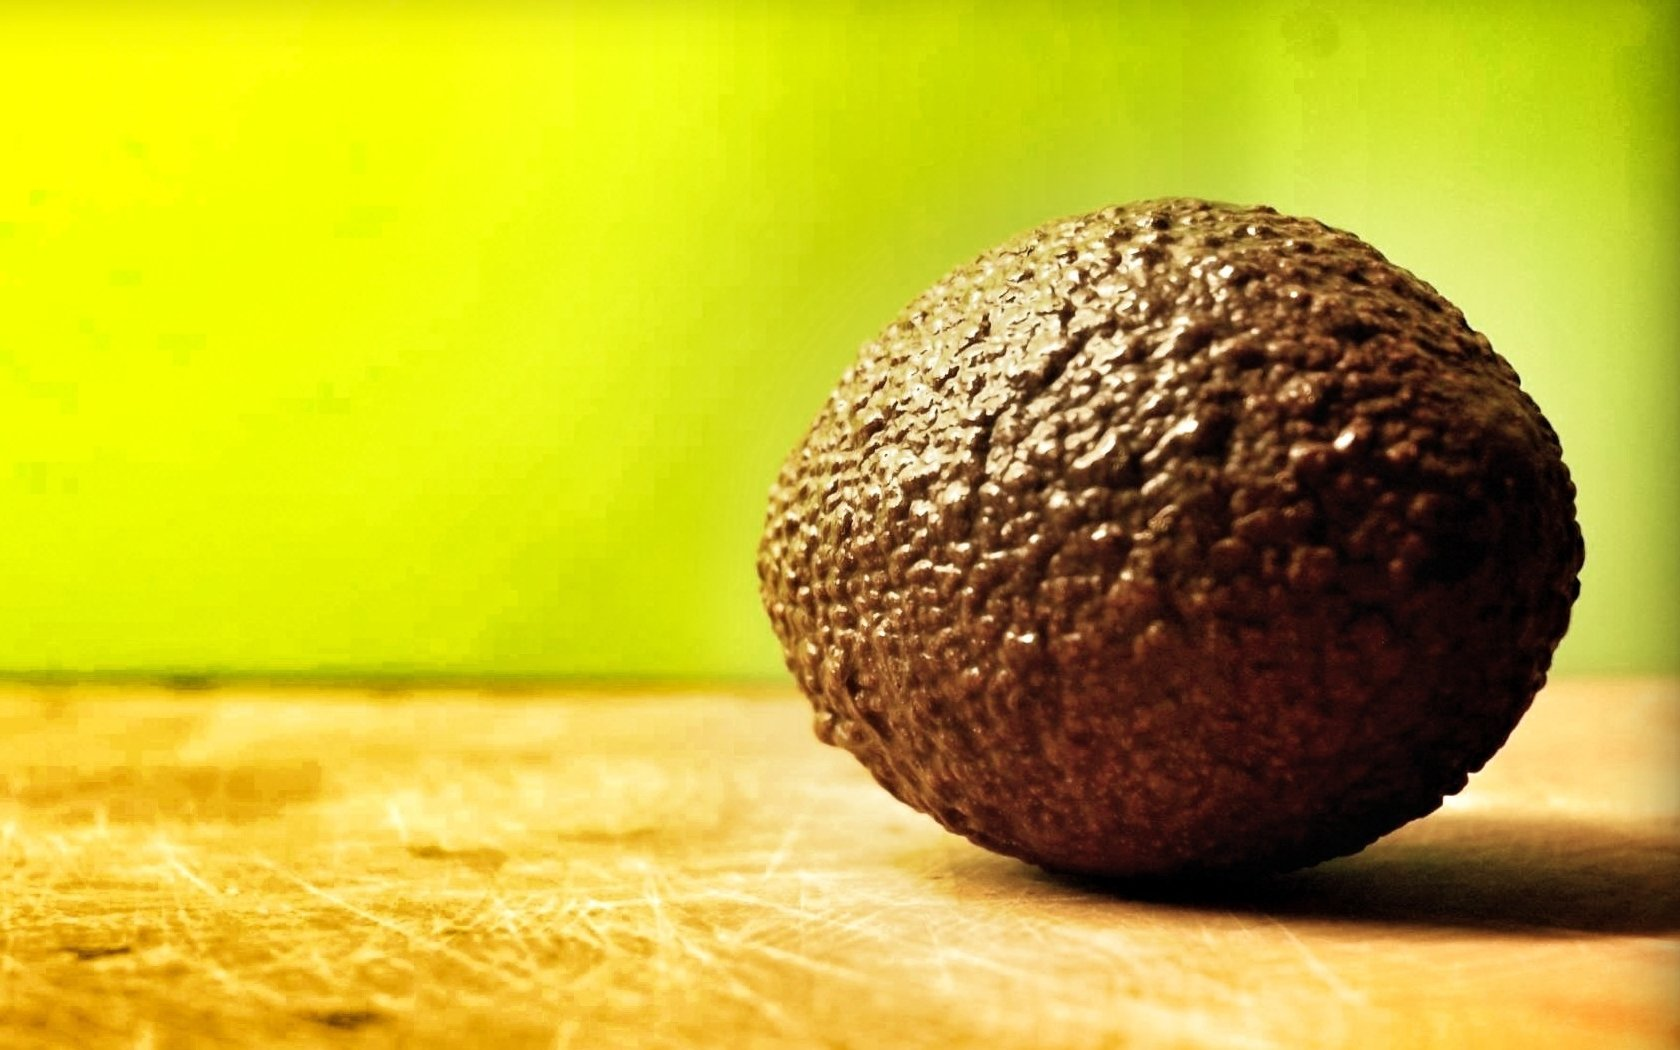 Free Avocado high quality wallpaper ID:315015 for hd 1680x1050 desktop